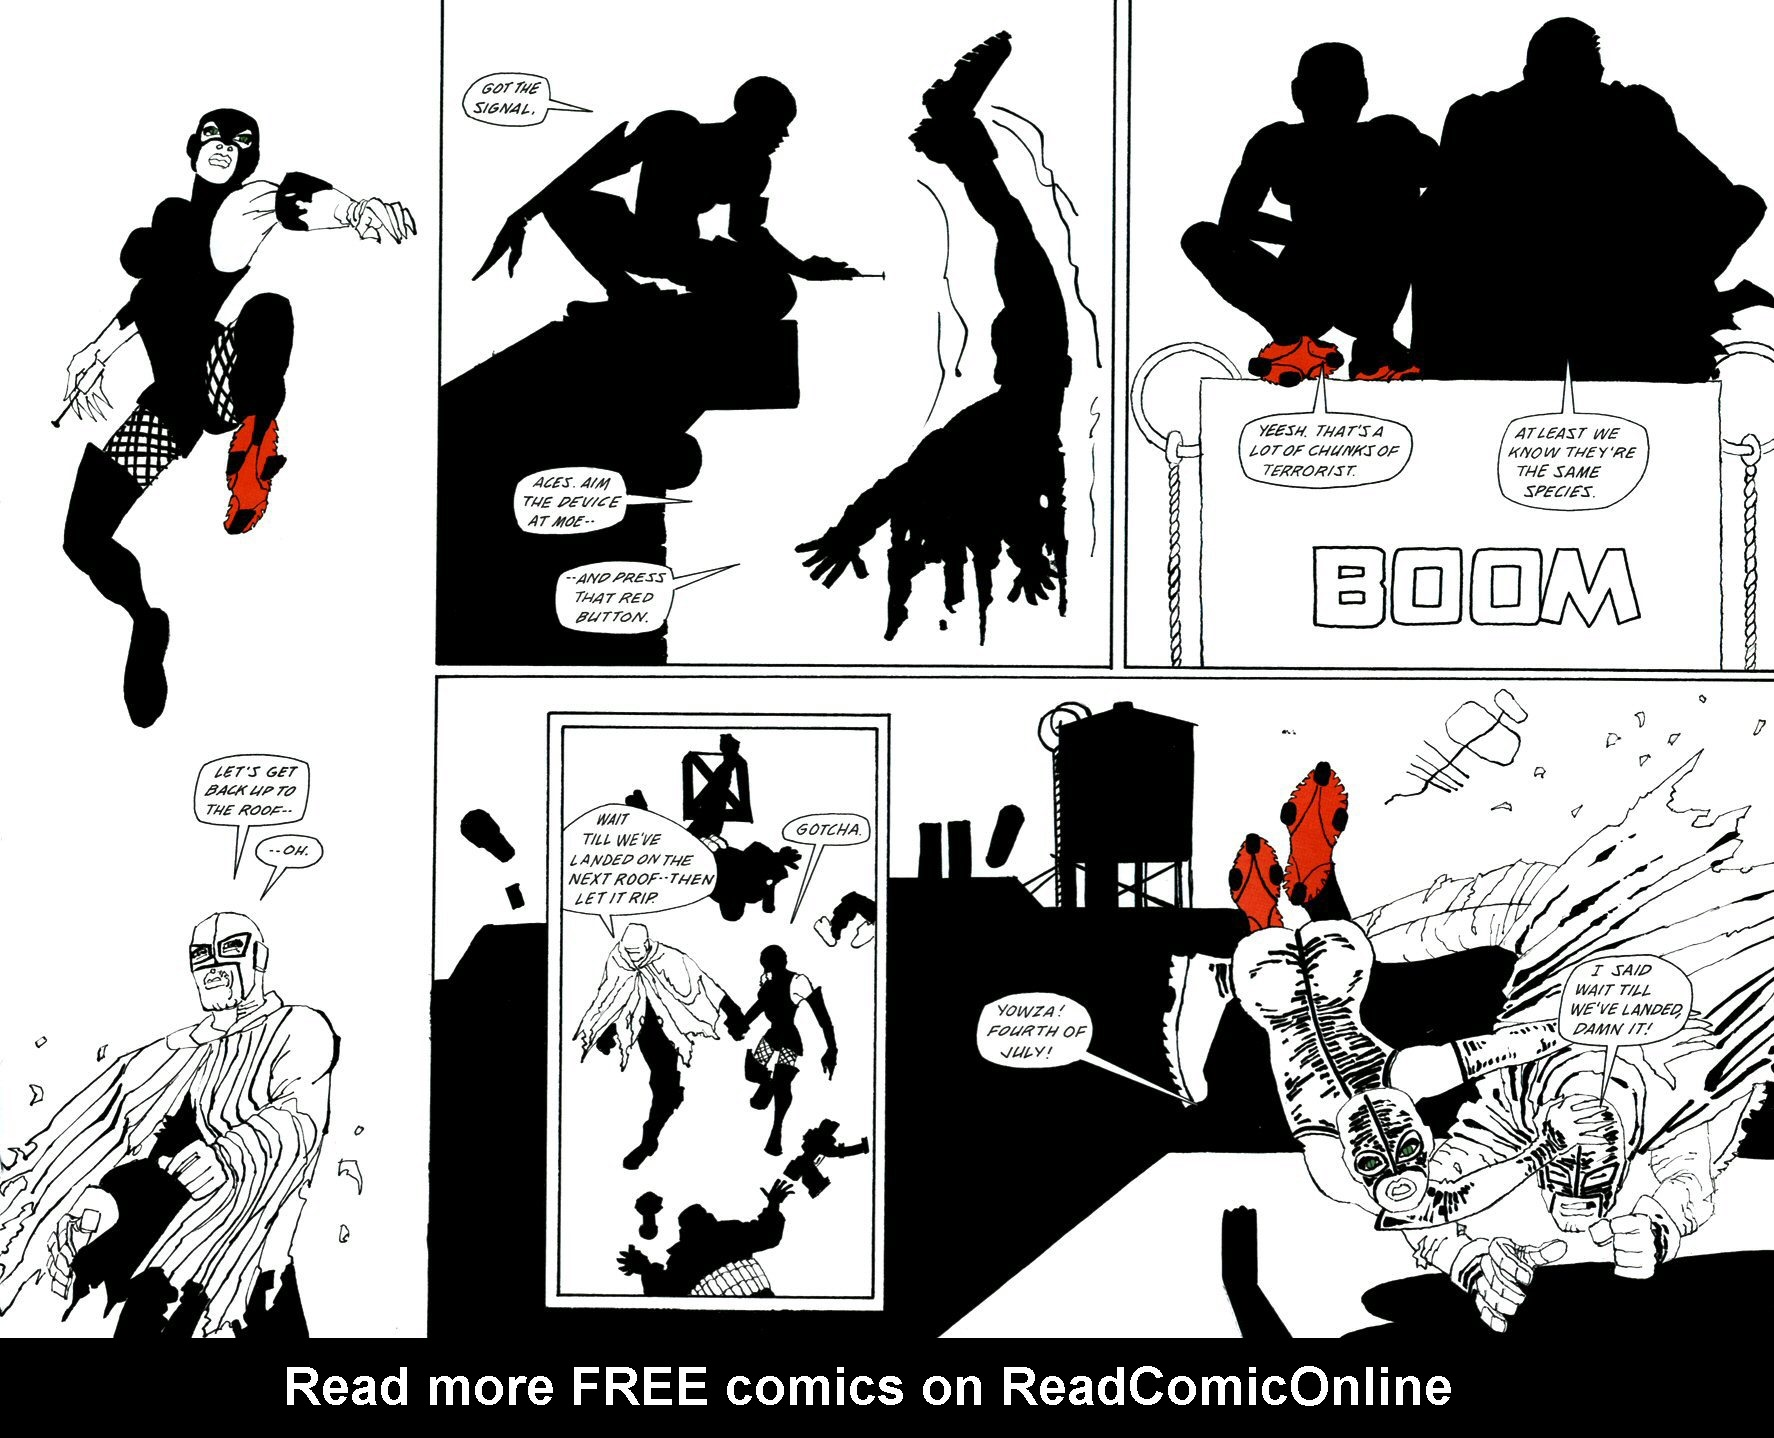 Read online Frank Miller's Holy Terror comic -  Issue # TPB - 84